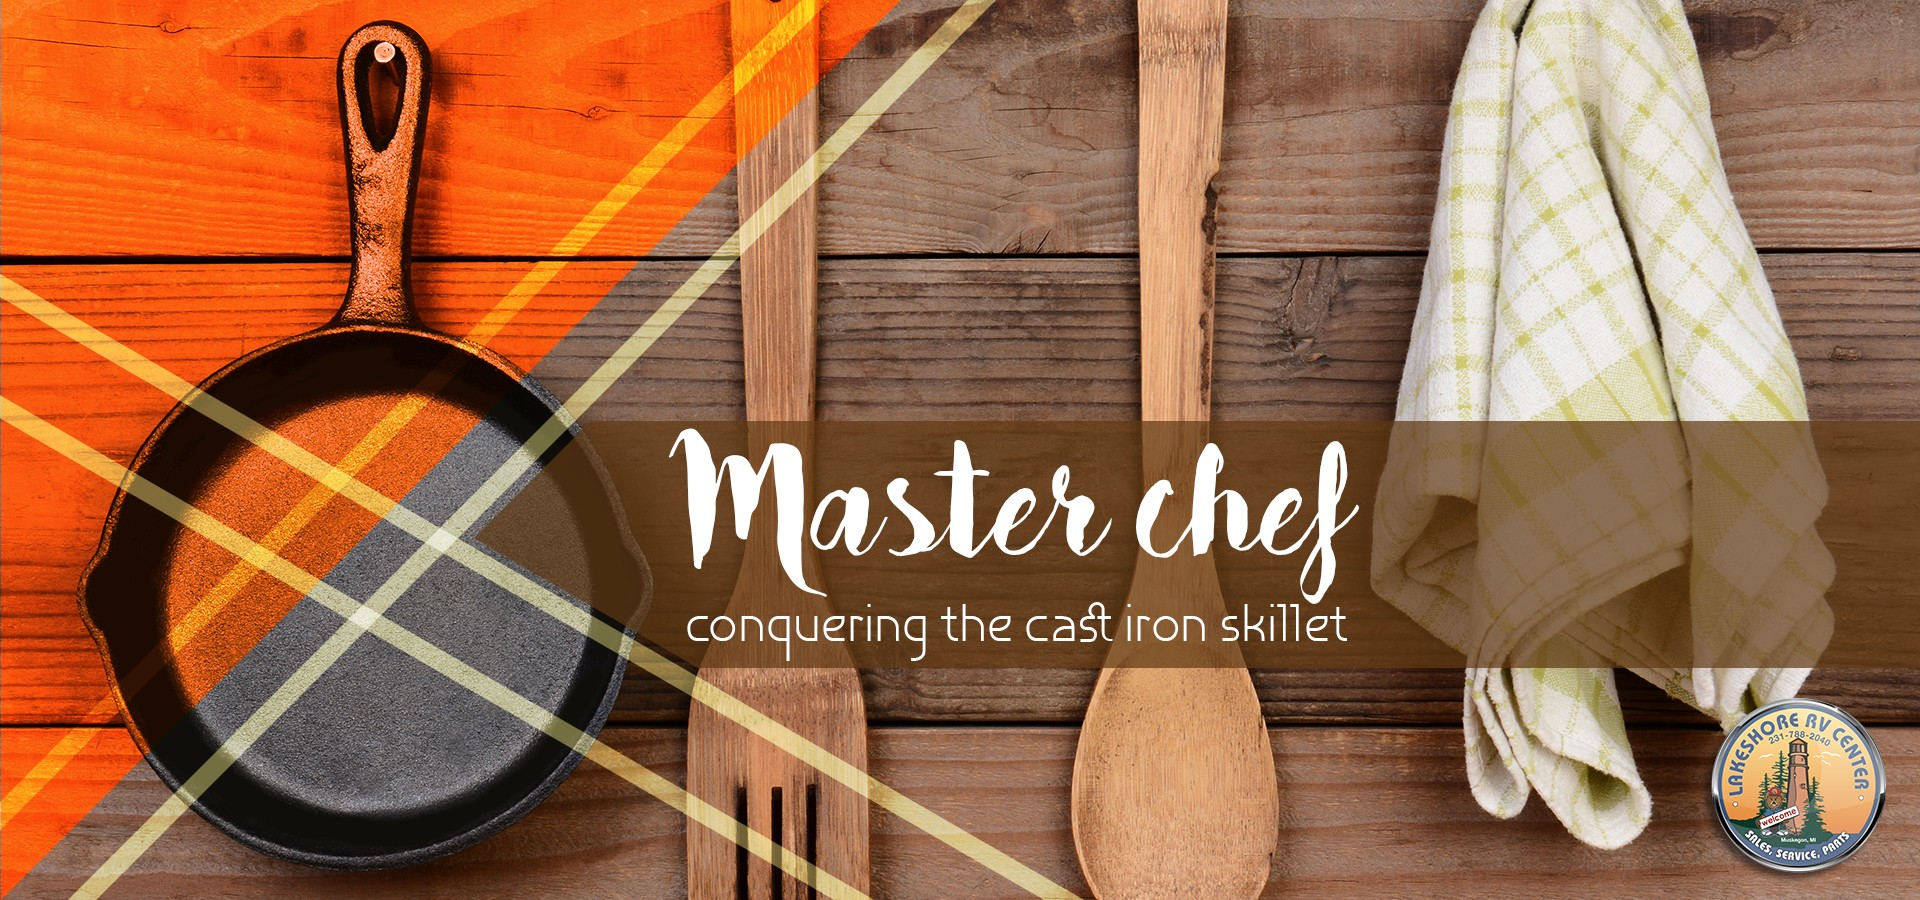 Master chef: conquering the cast iron skillet